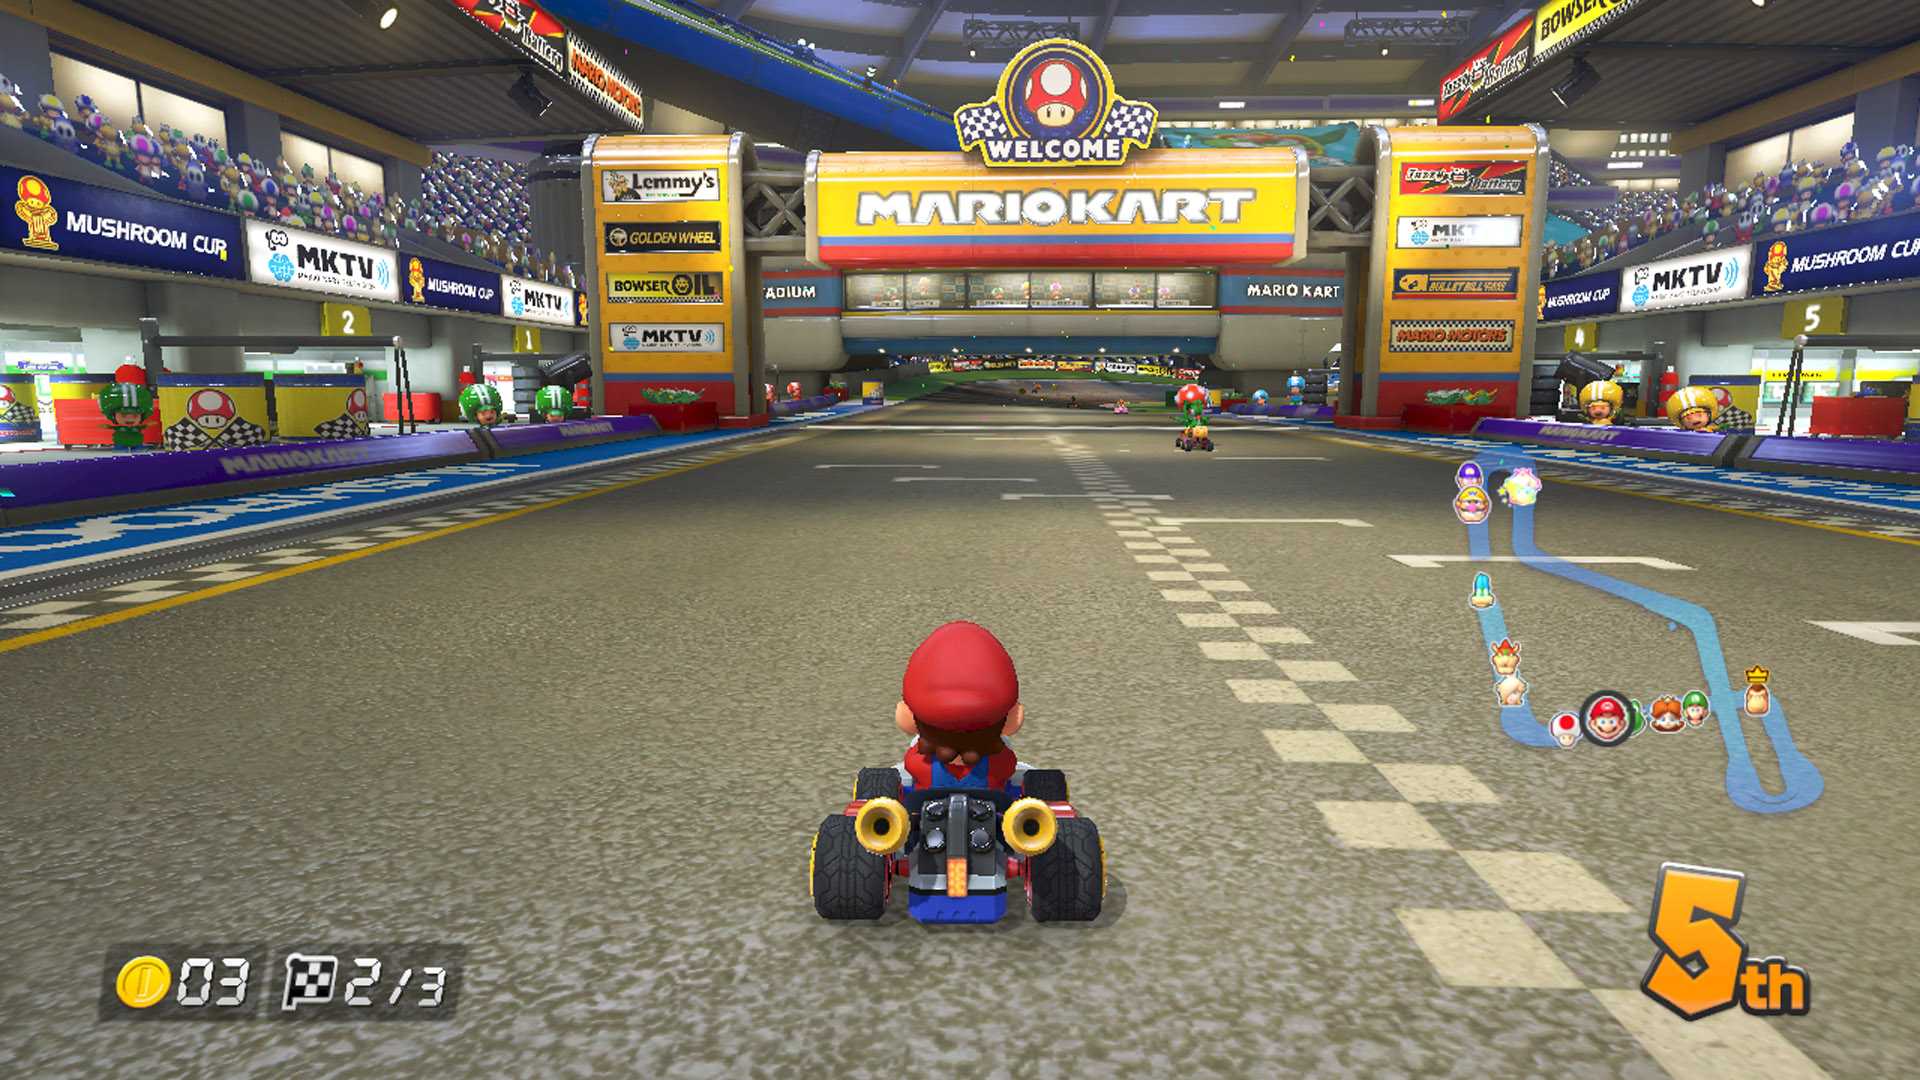 Image result for mario kart 8 screenshot